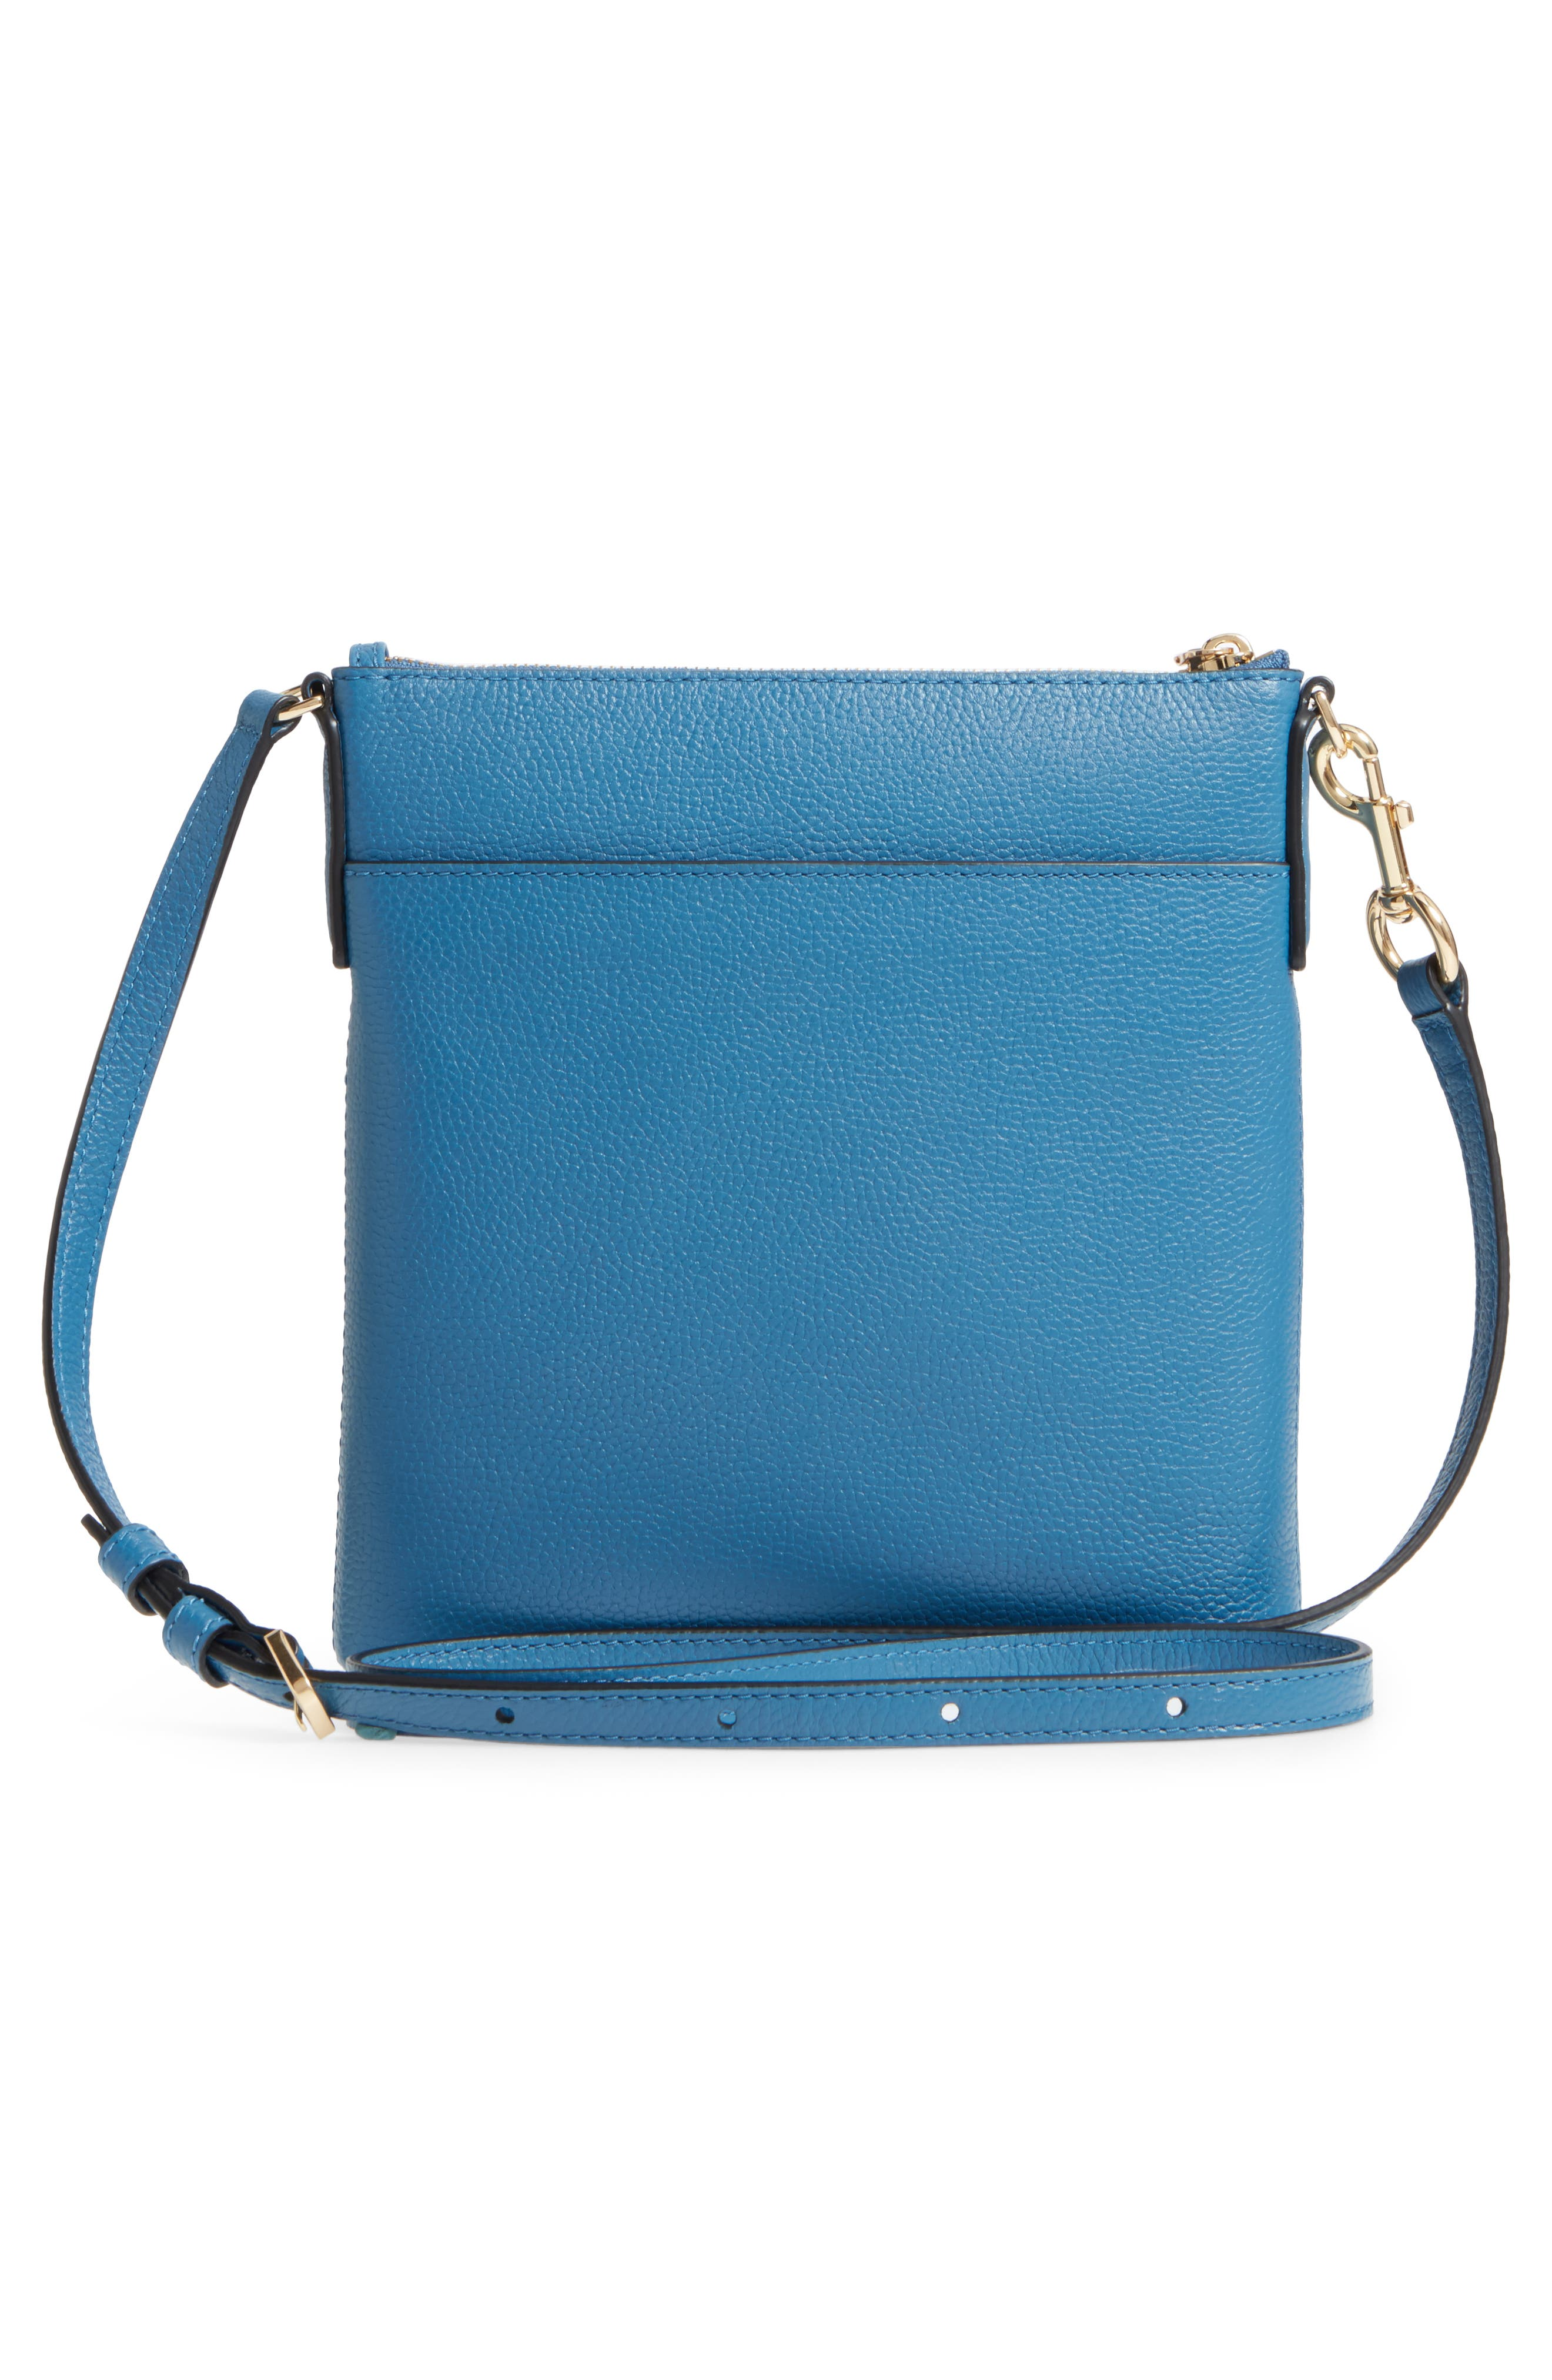 Recruit North/South Leather Crossbody Bag,                             Alternate thumbnail 3, color,                             476